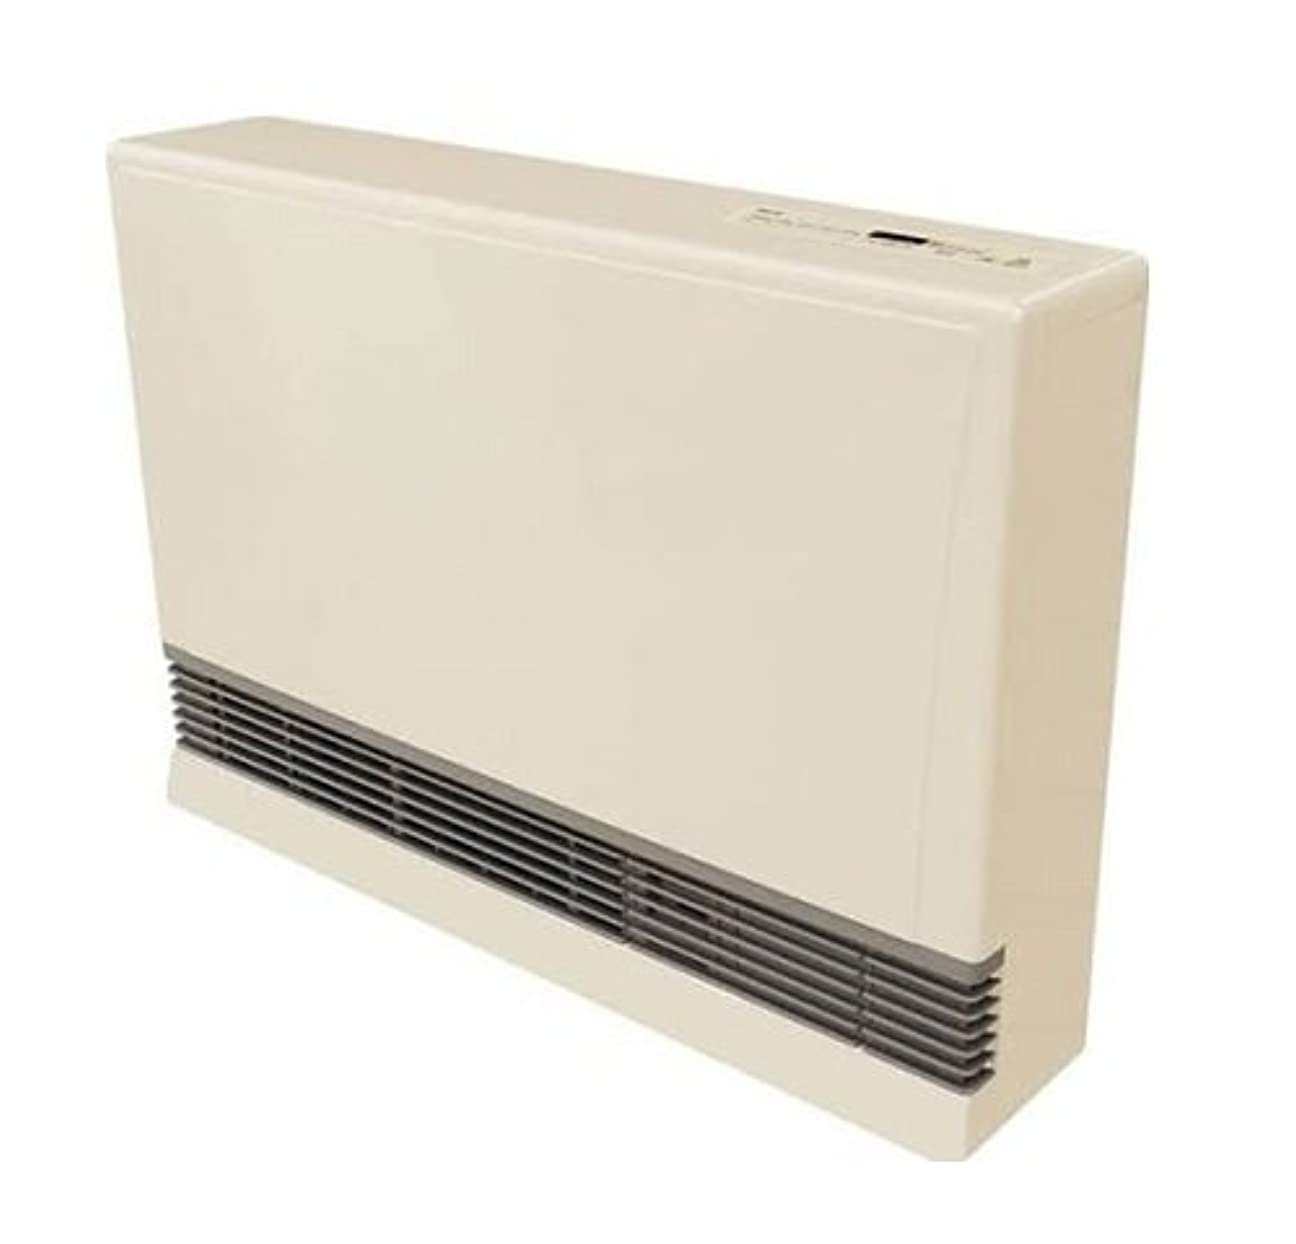 競争力のある見ました動的Rinnai EX38CTLP Direct Vent Space Heater - Liquid Propane BEIGE, 141[並行輸入]